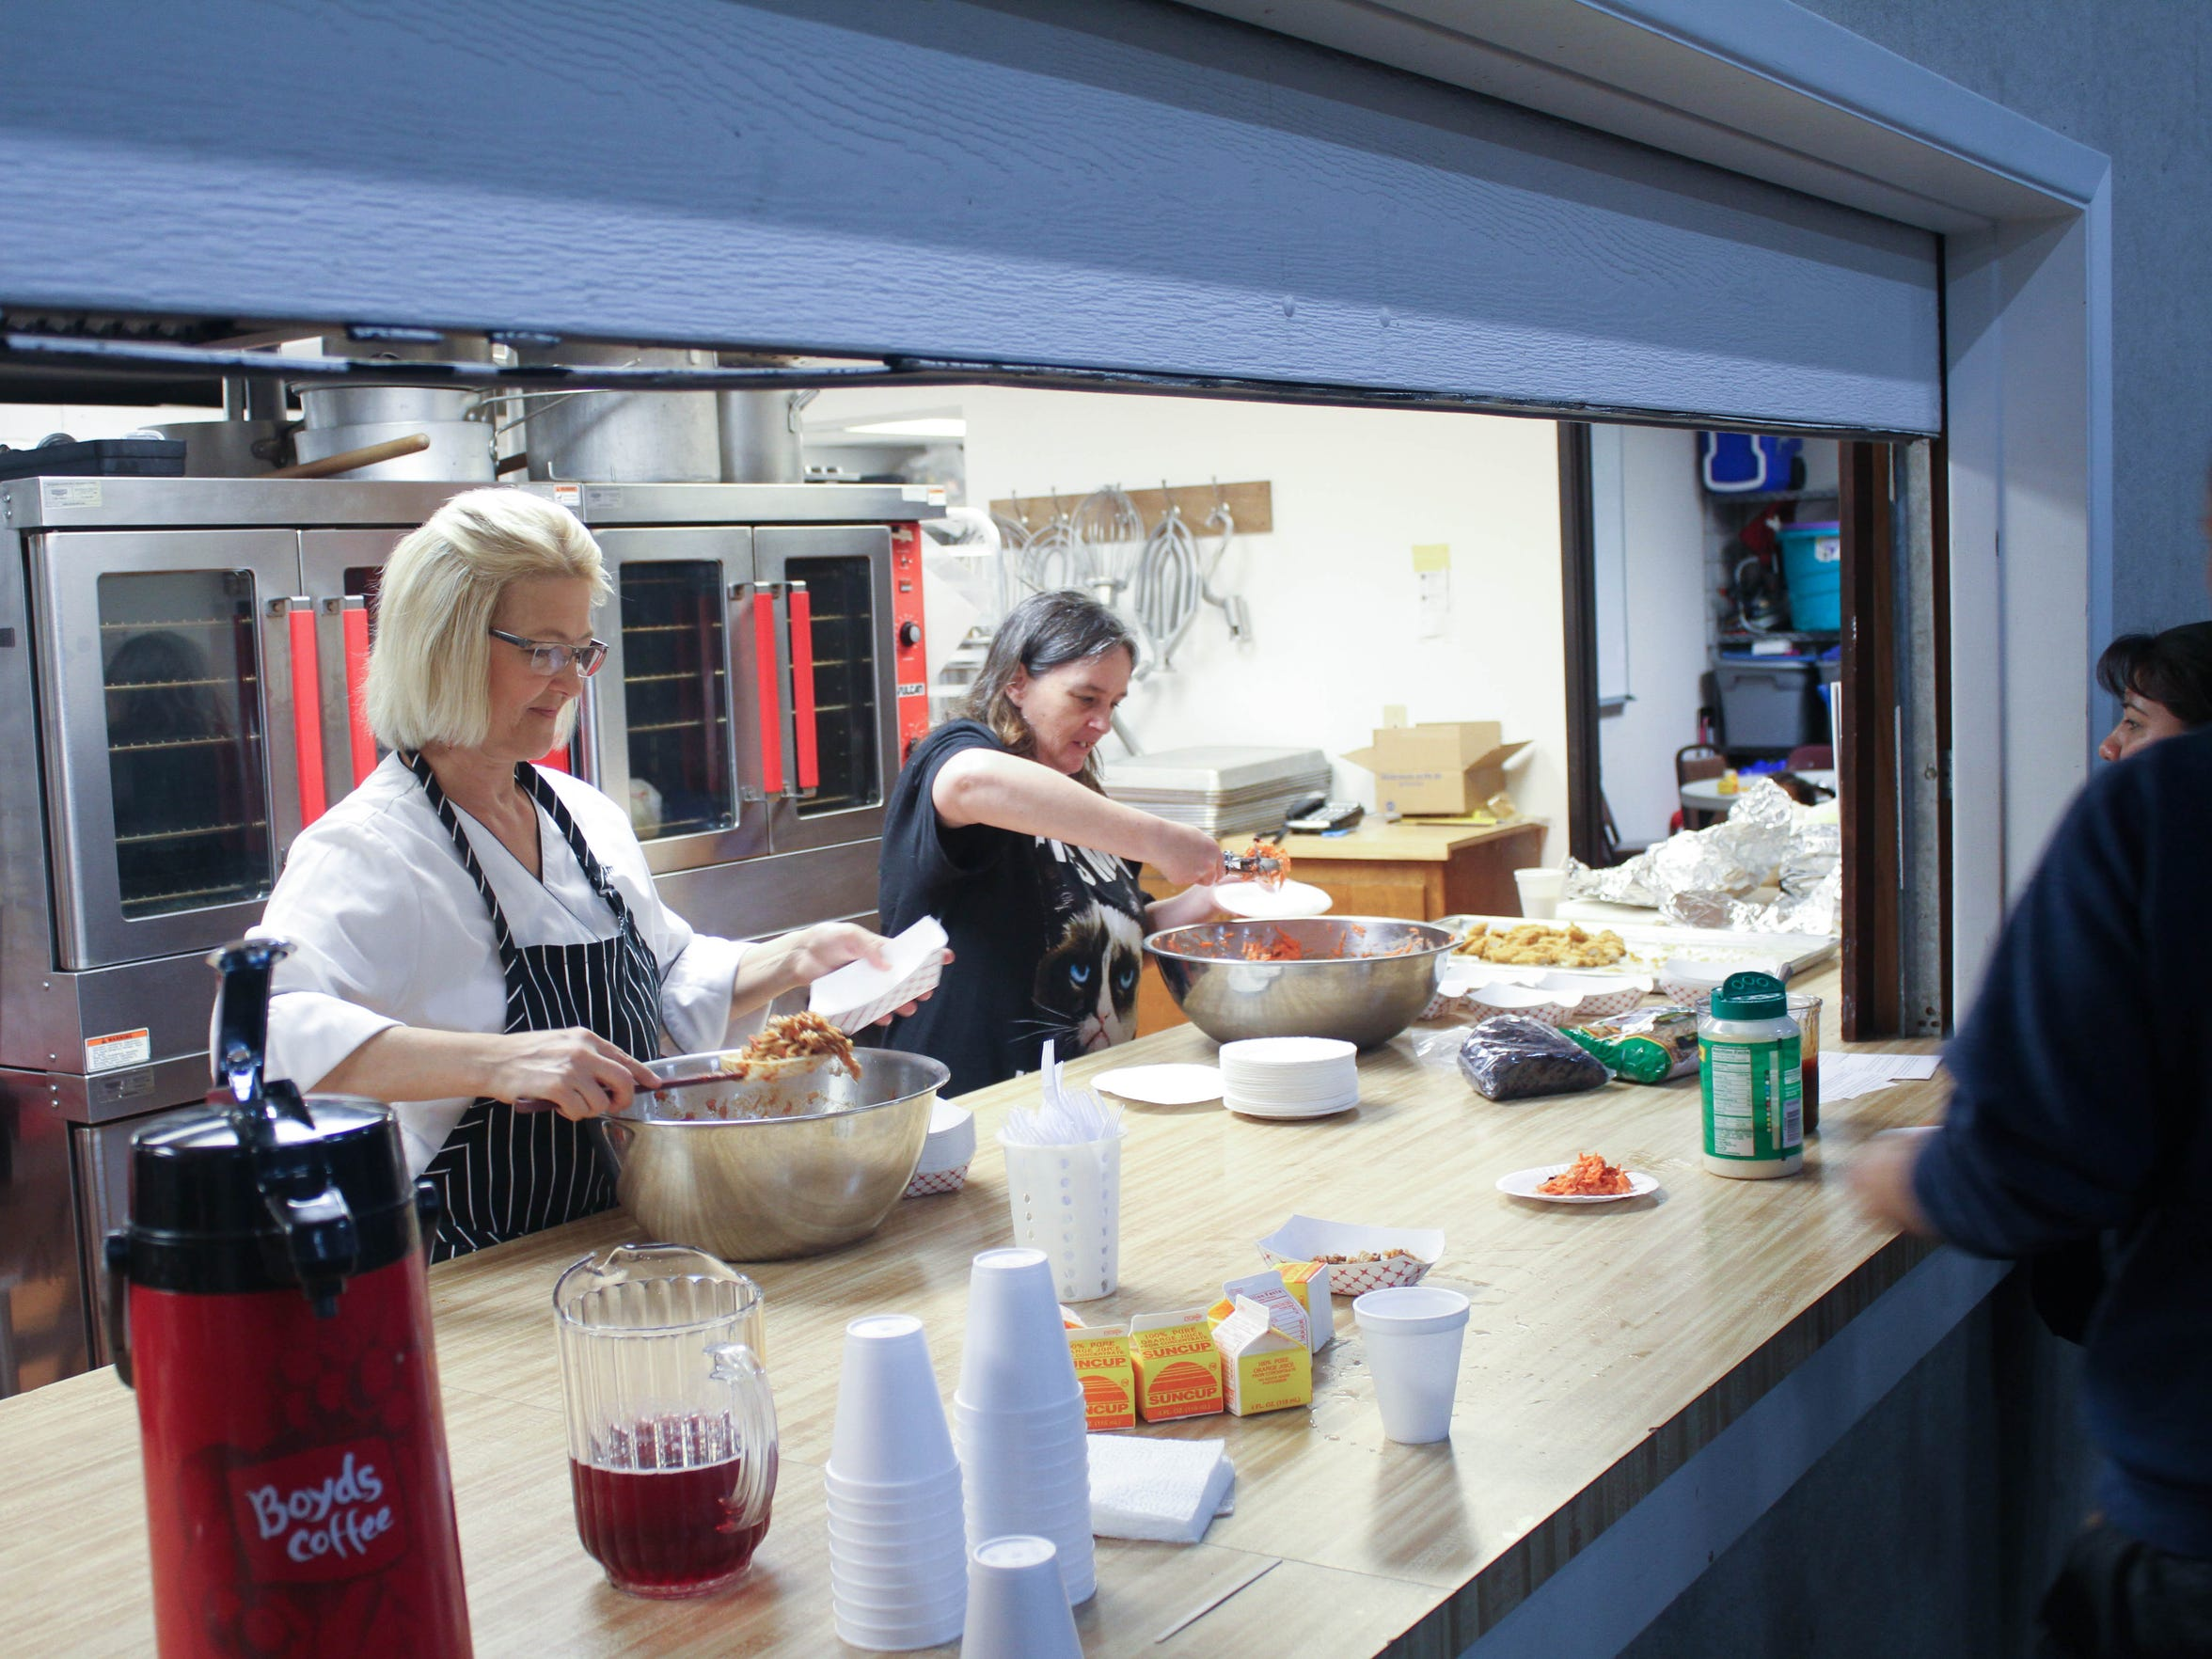 Kim Banick and other volunteers cook and serve meals